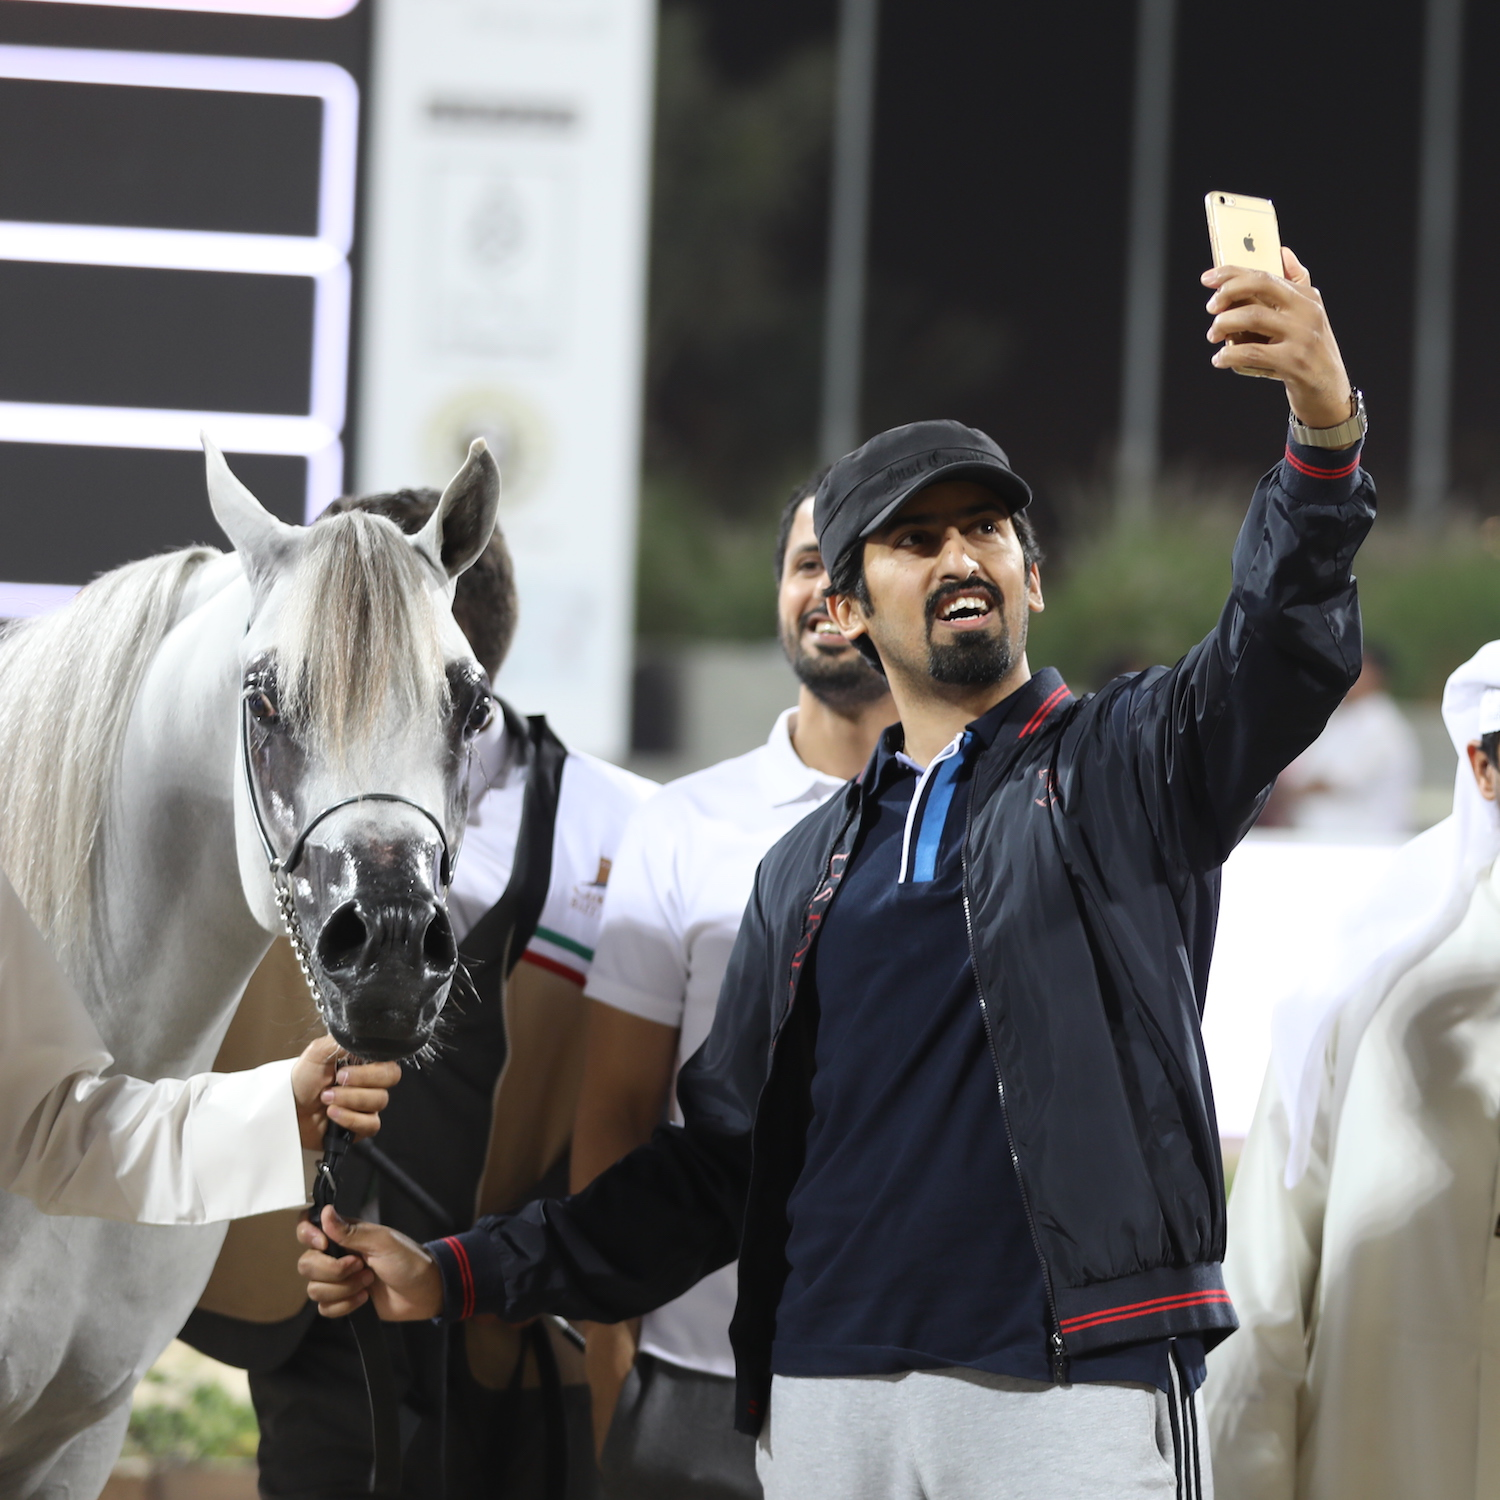 Kuwait Nationals - Just a selfie - photo by Michael Stezrs